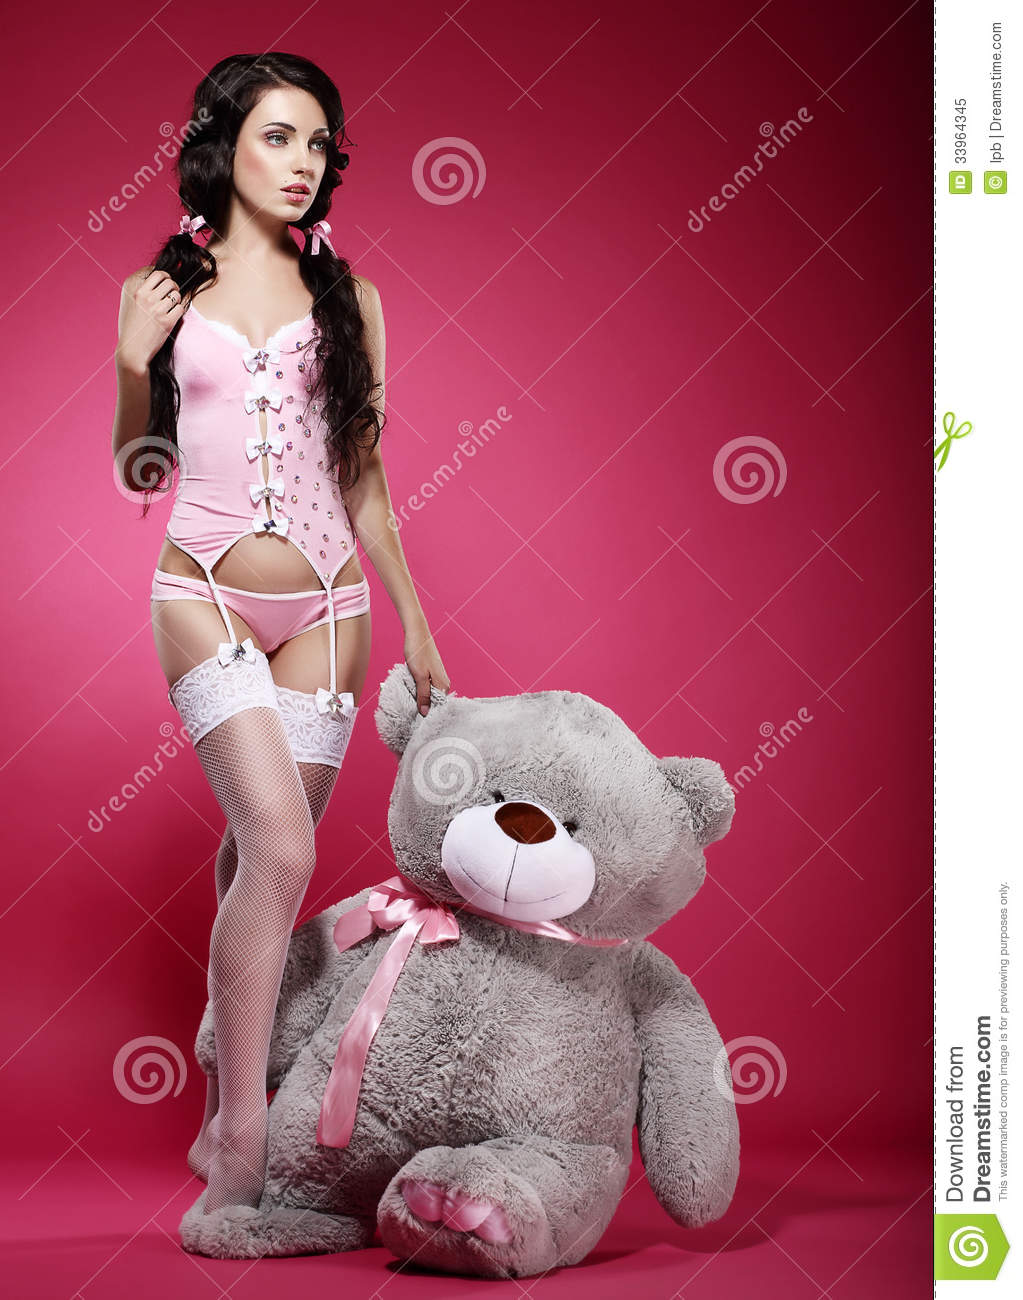 Some Fascinating Teenage Girl Bedroom Ideas: Fascinating Young Woman In Pink Lingerie With Her Fondling